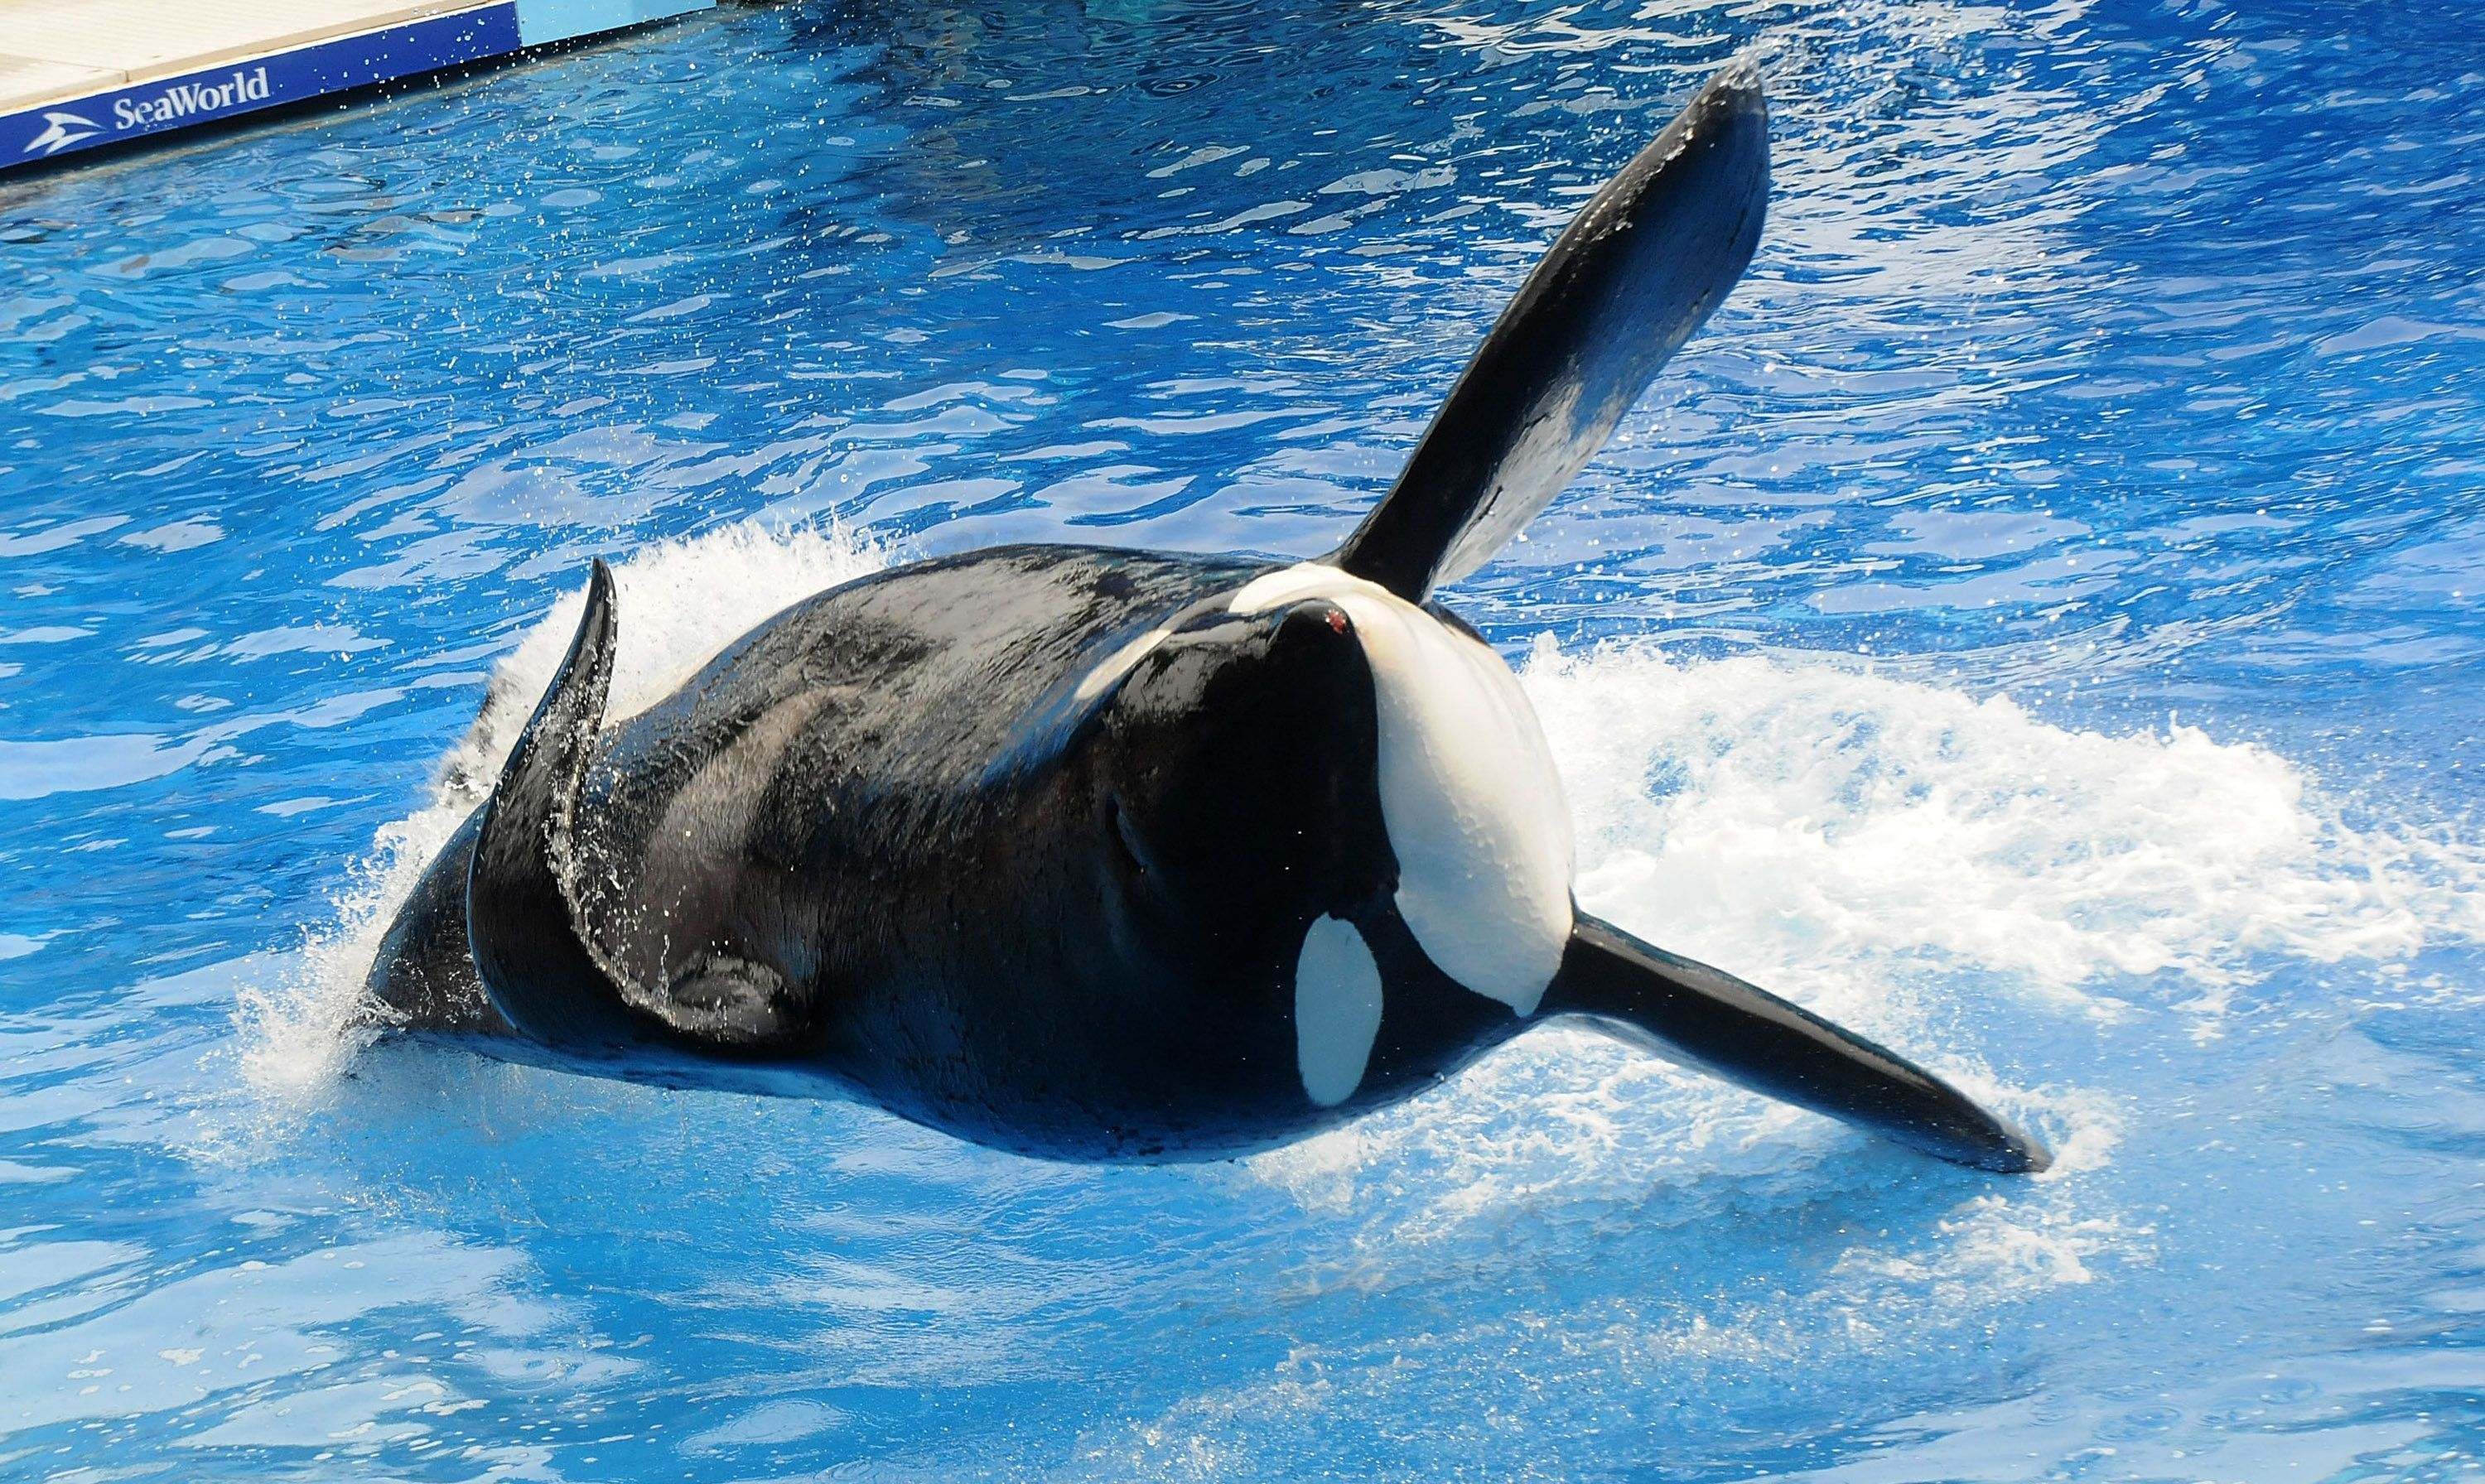 ORLANDO, FL - MARCH 30:  Killer whale 'Tilikum' appears during its performance in its show 'Believe' at Sea World on March 30, 2011 in Orlando, Florida.  'Tilikum' is back to public performance March 30, the first time since the six-ton whale has performed since killing trainer 40-year-old trainer Dawn Brancheau at the marine park on February 24 2010, after Sea World Parks & Entertainment president Jim Atchinson signed off on the decision this week. (Photo by Gerardo Mora/Getty Images)